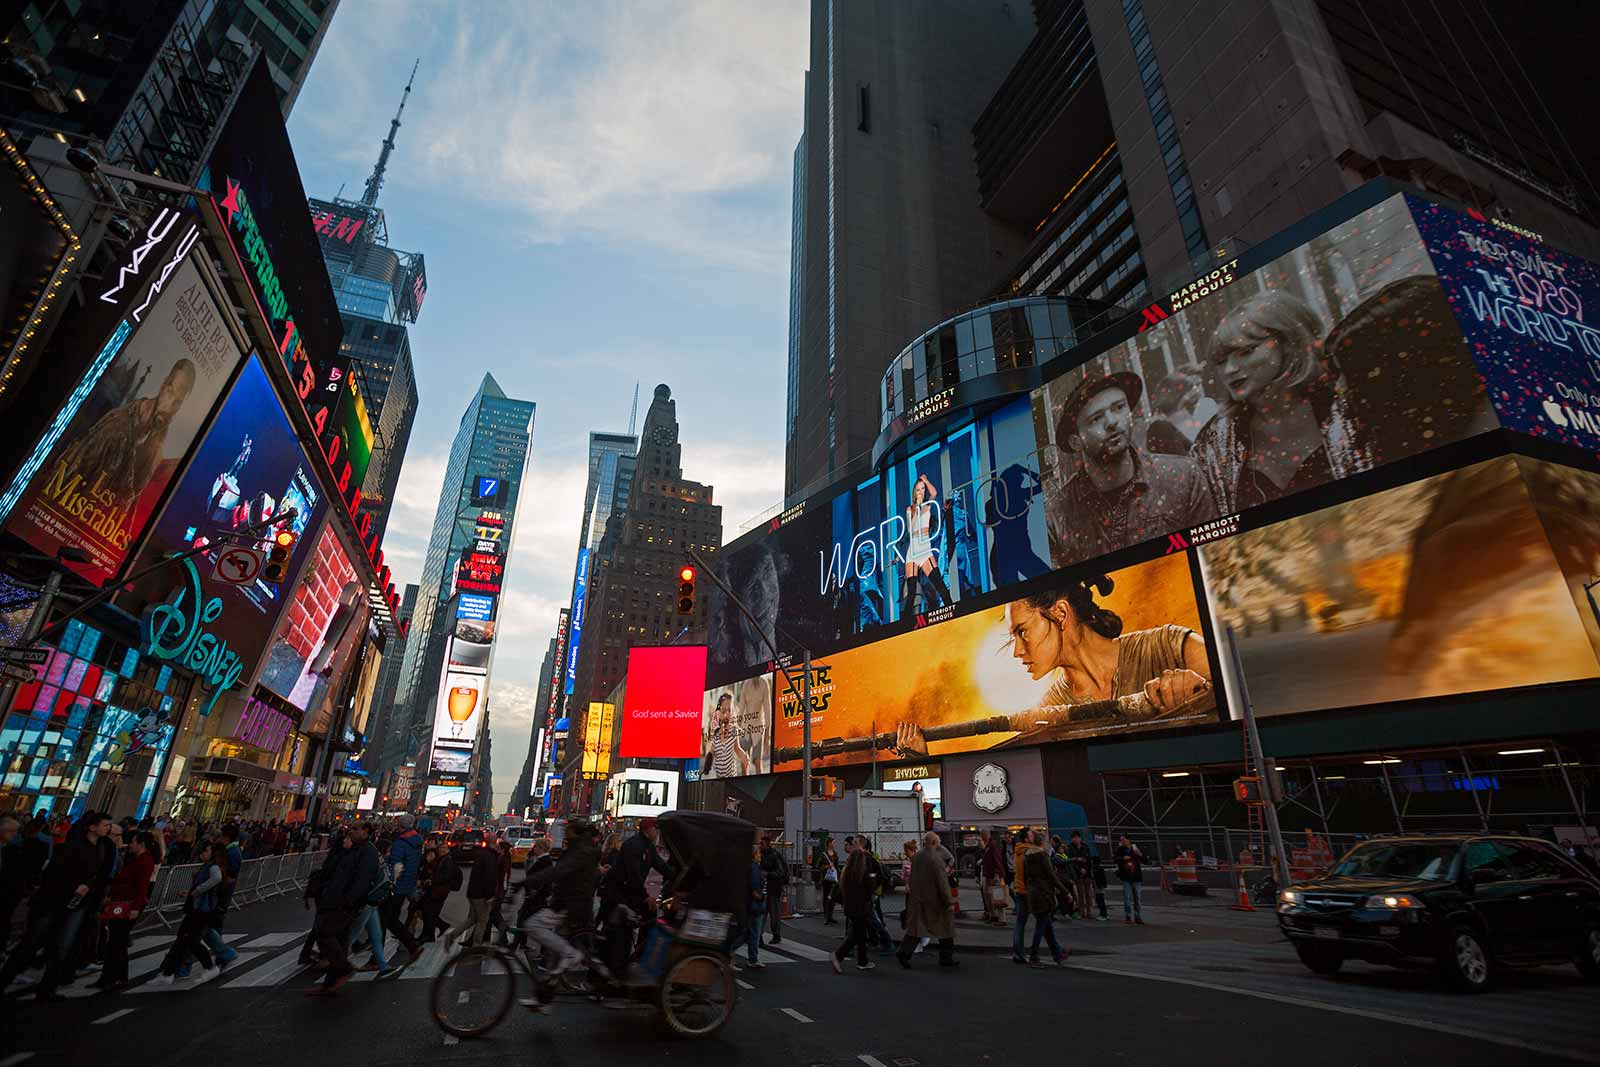 """Times Square is one of the most visited tourist destinations in the world and is sometimes referred to as """"The Crossroads of the World"""". If you forget about the road blocks, armed police officers and the 330.000 people crossing every day, I could start to like this spot after all."""